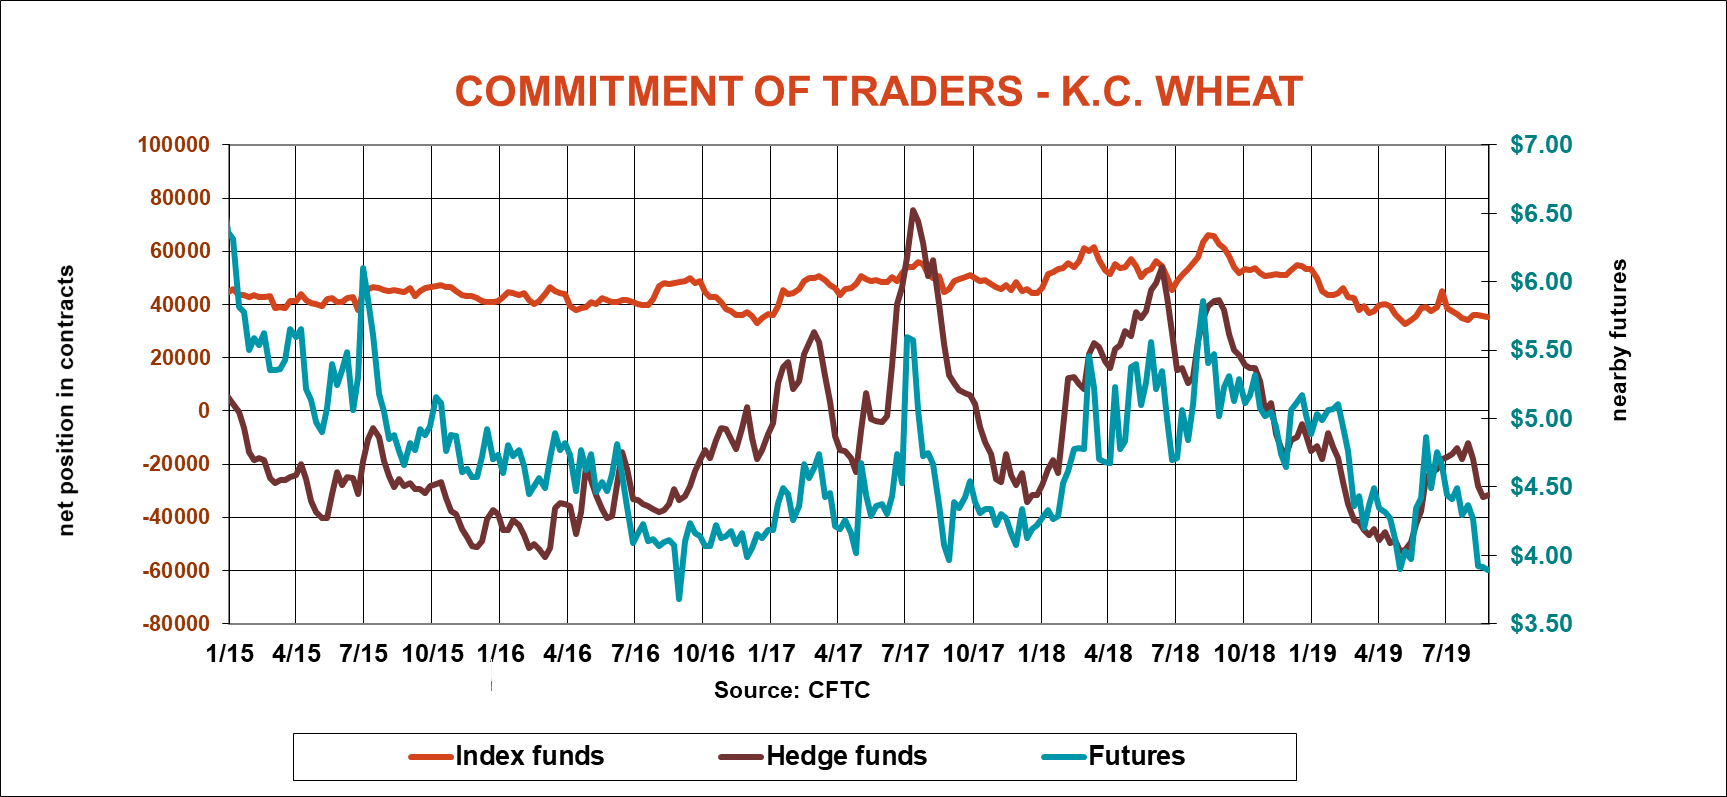 commitment-traders-KC-wheat-cftc-083019.png